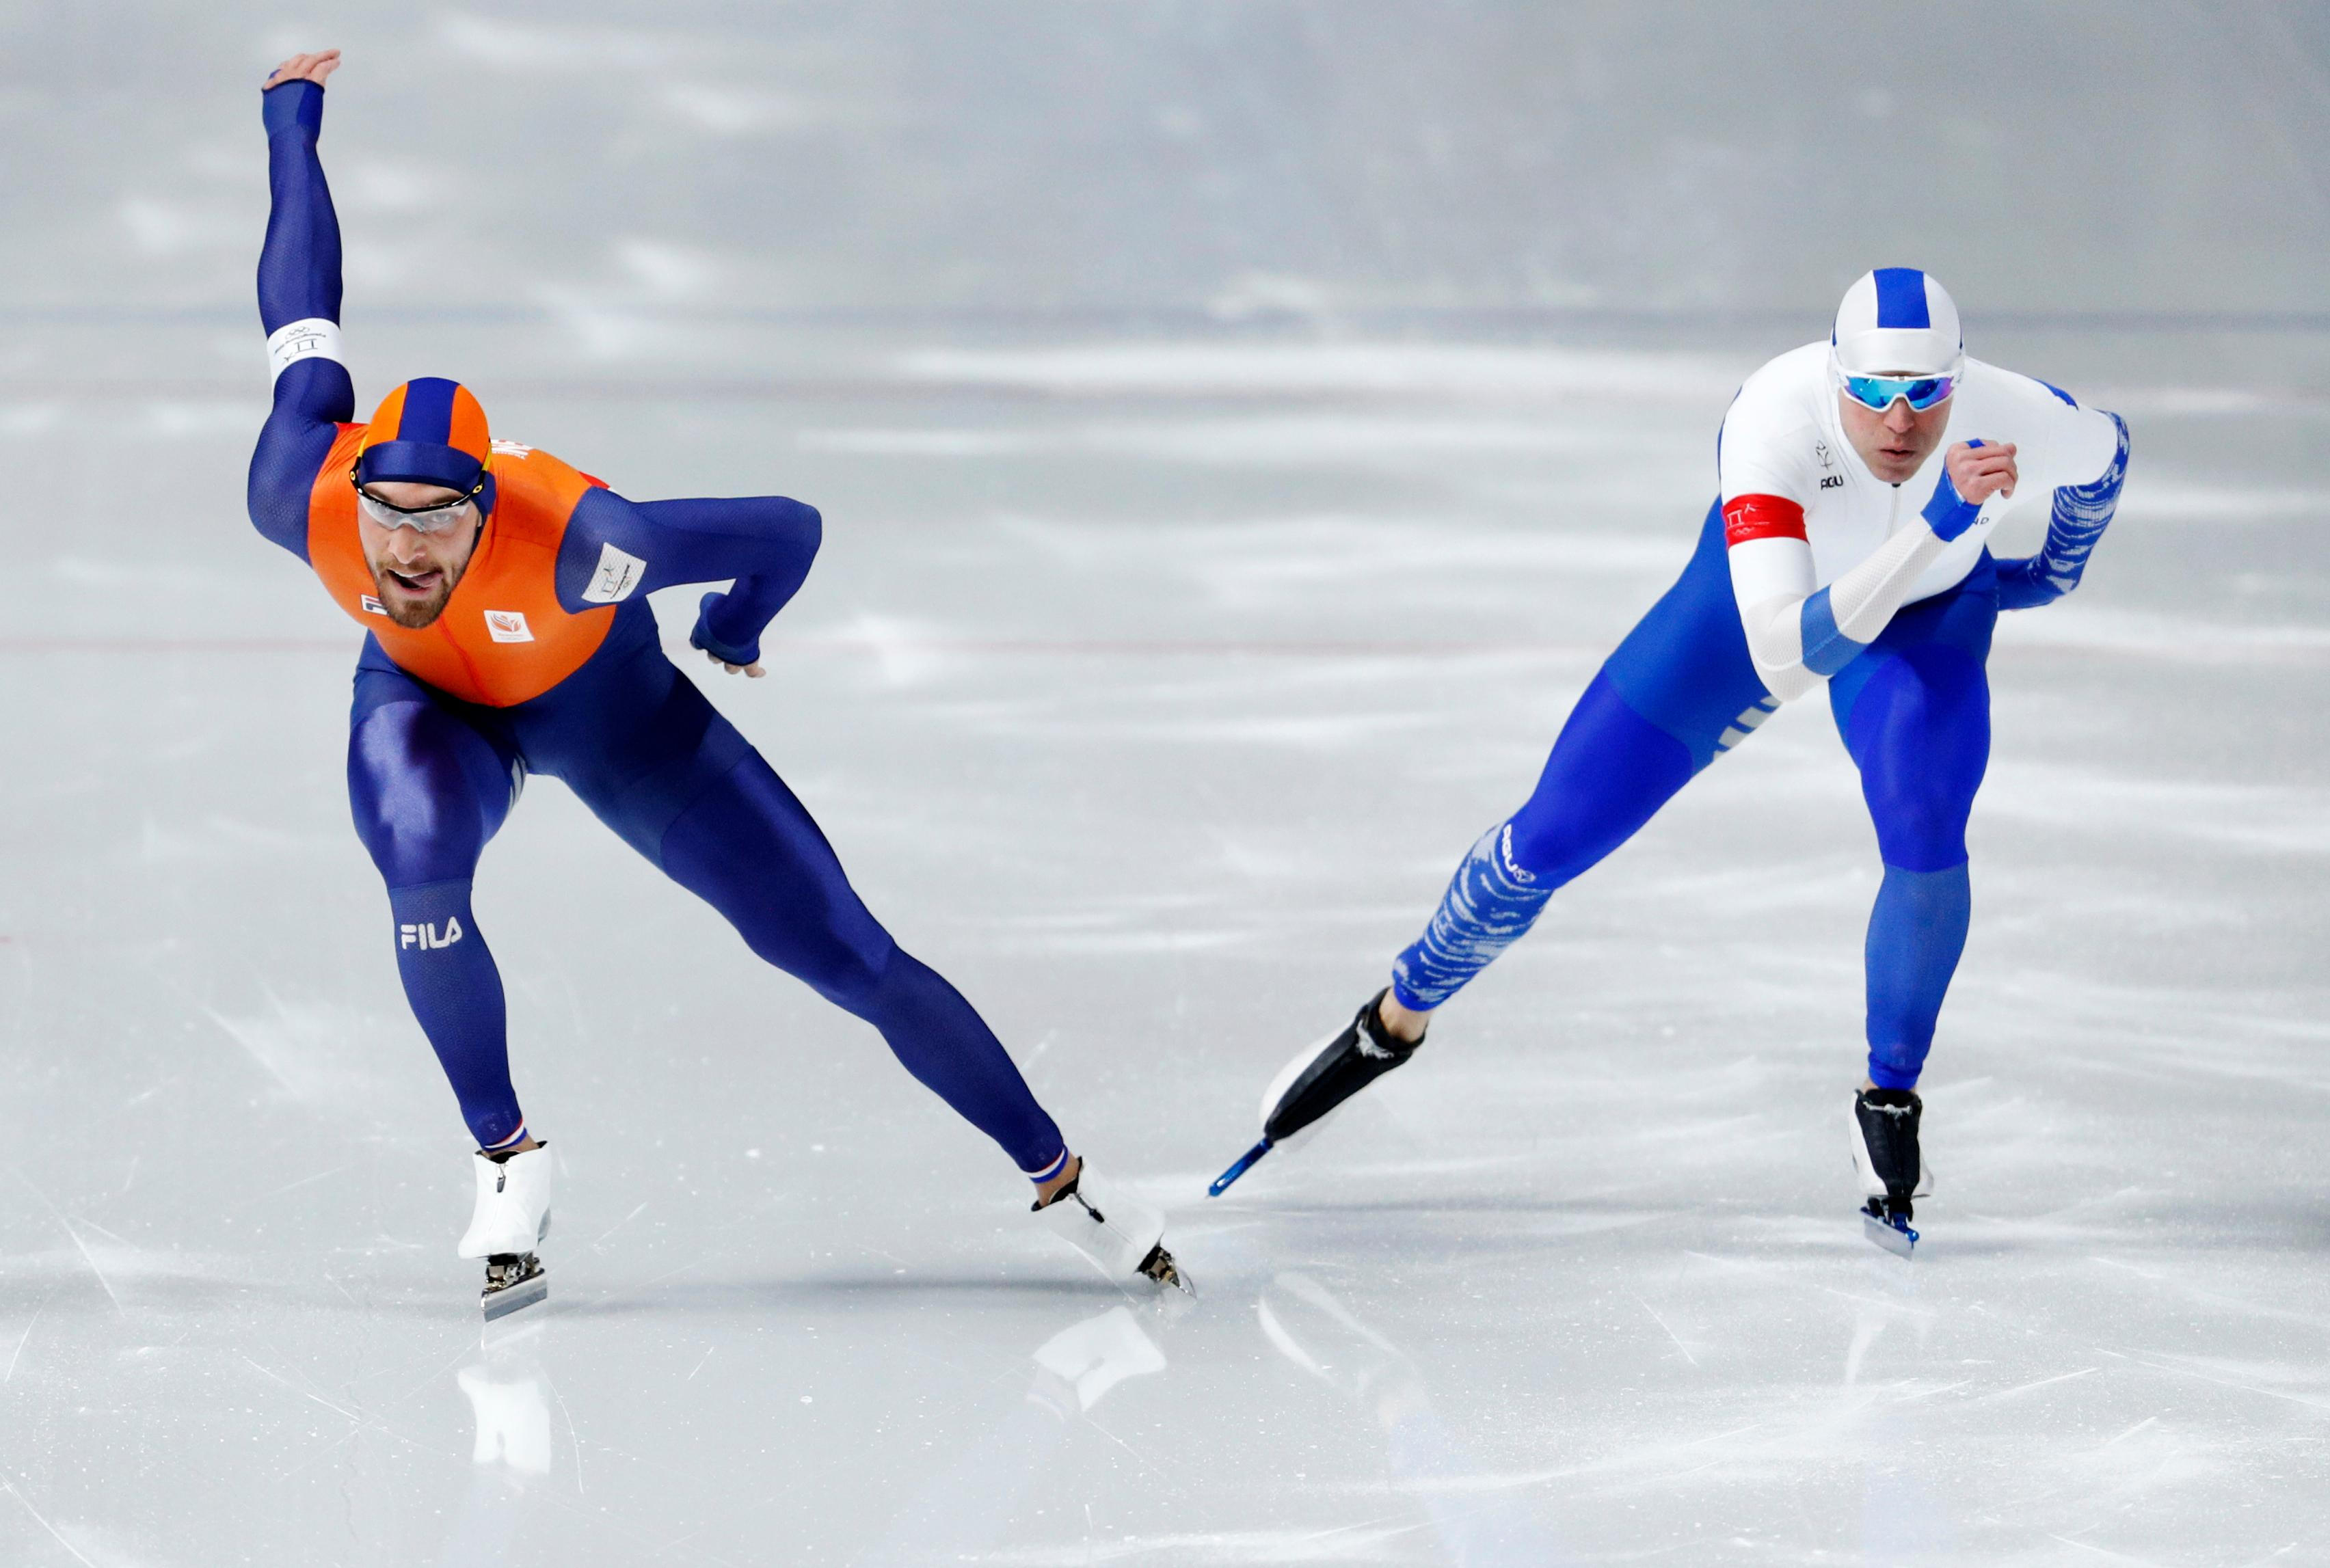 Gold medalist Kjeld Nuis of The Netherlands crosses over to the inside lane where Mika Poutala of Finland holds back and makes way to let Nuis through and make sure he does not ruin his gold medal race during the men's 1,000 meters speedskating race at the Gangneung Oval at the 2018 Winter Olympics in Gangneung, South Korea, Friday, Feb. 23, 2018. (AP Photo/John Locher)